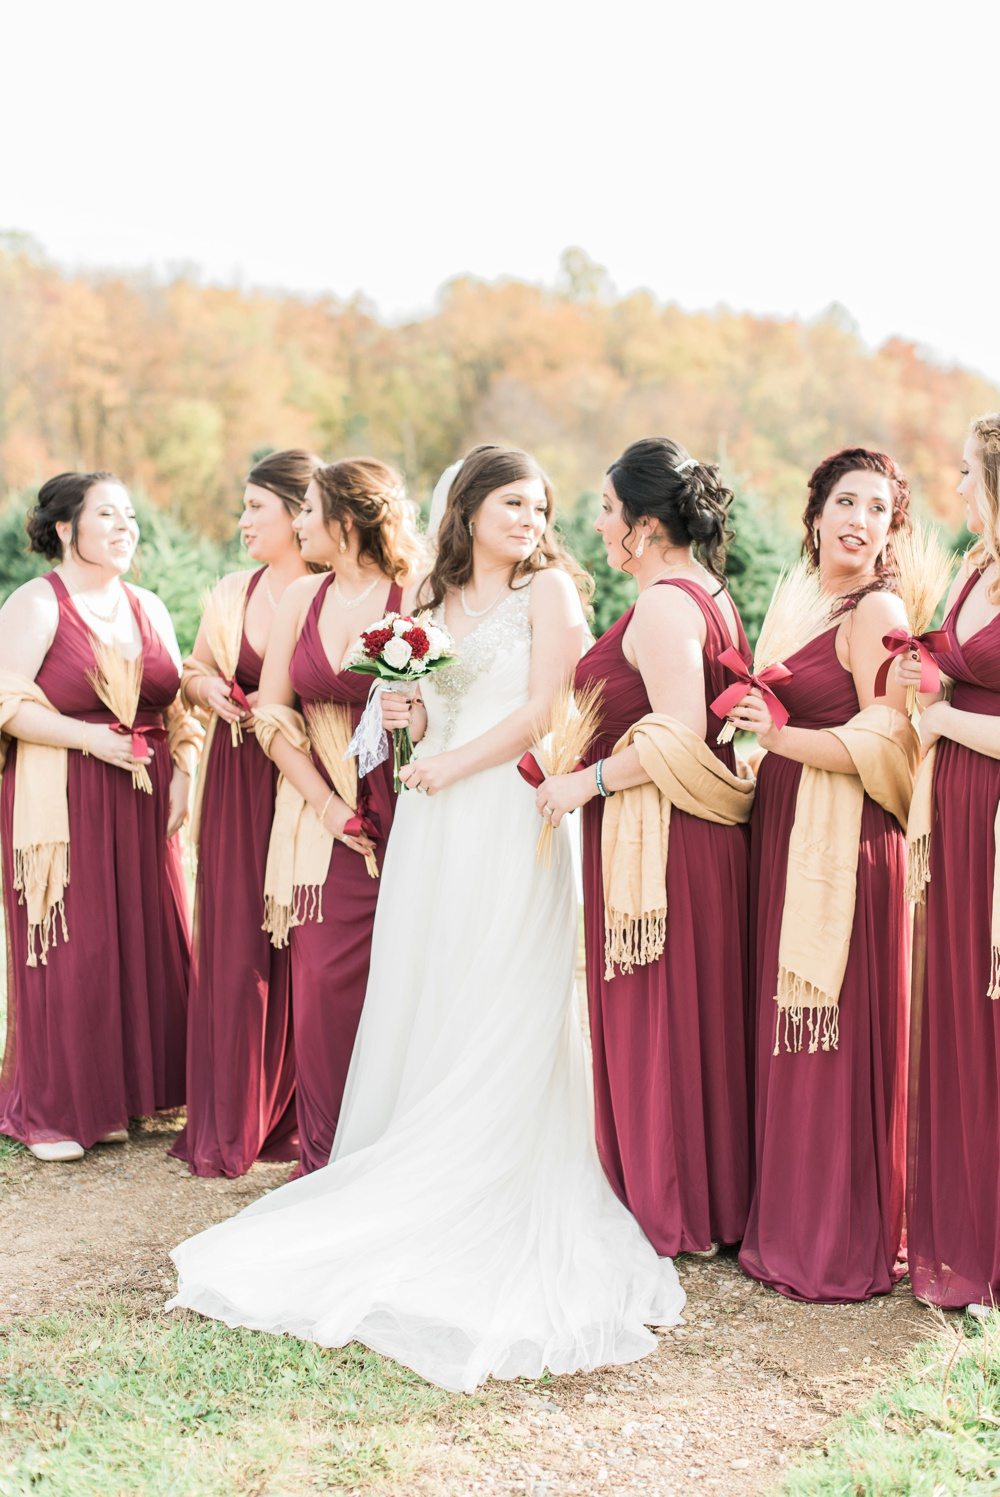 ricciardis-tree-farm-wedding-wadsworth-ohio-lauren-ryan_0063.jpg